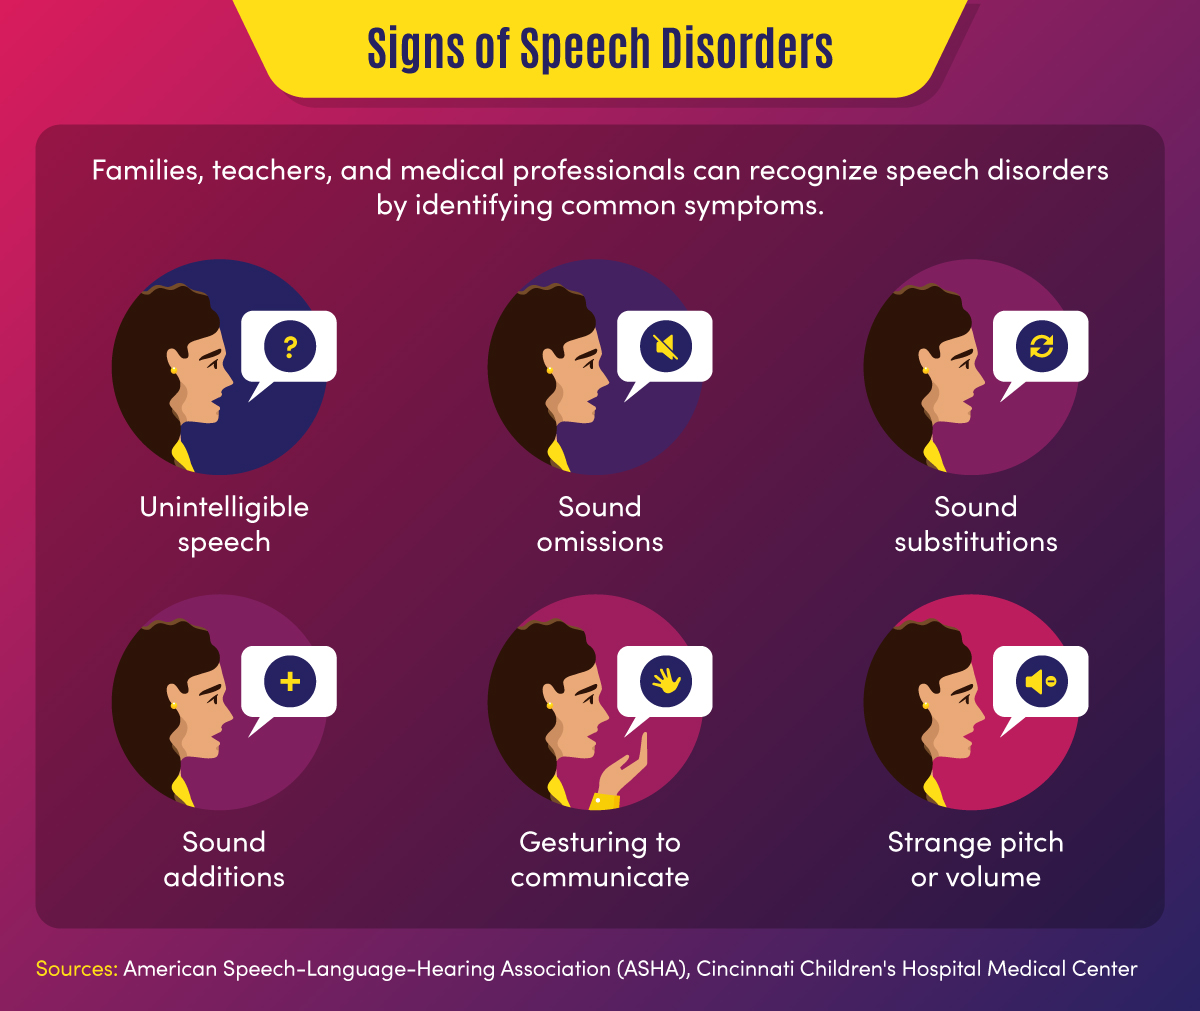 Signs of speech disorders include unintelligible speech and sound omissions, substitutions, and additions.